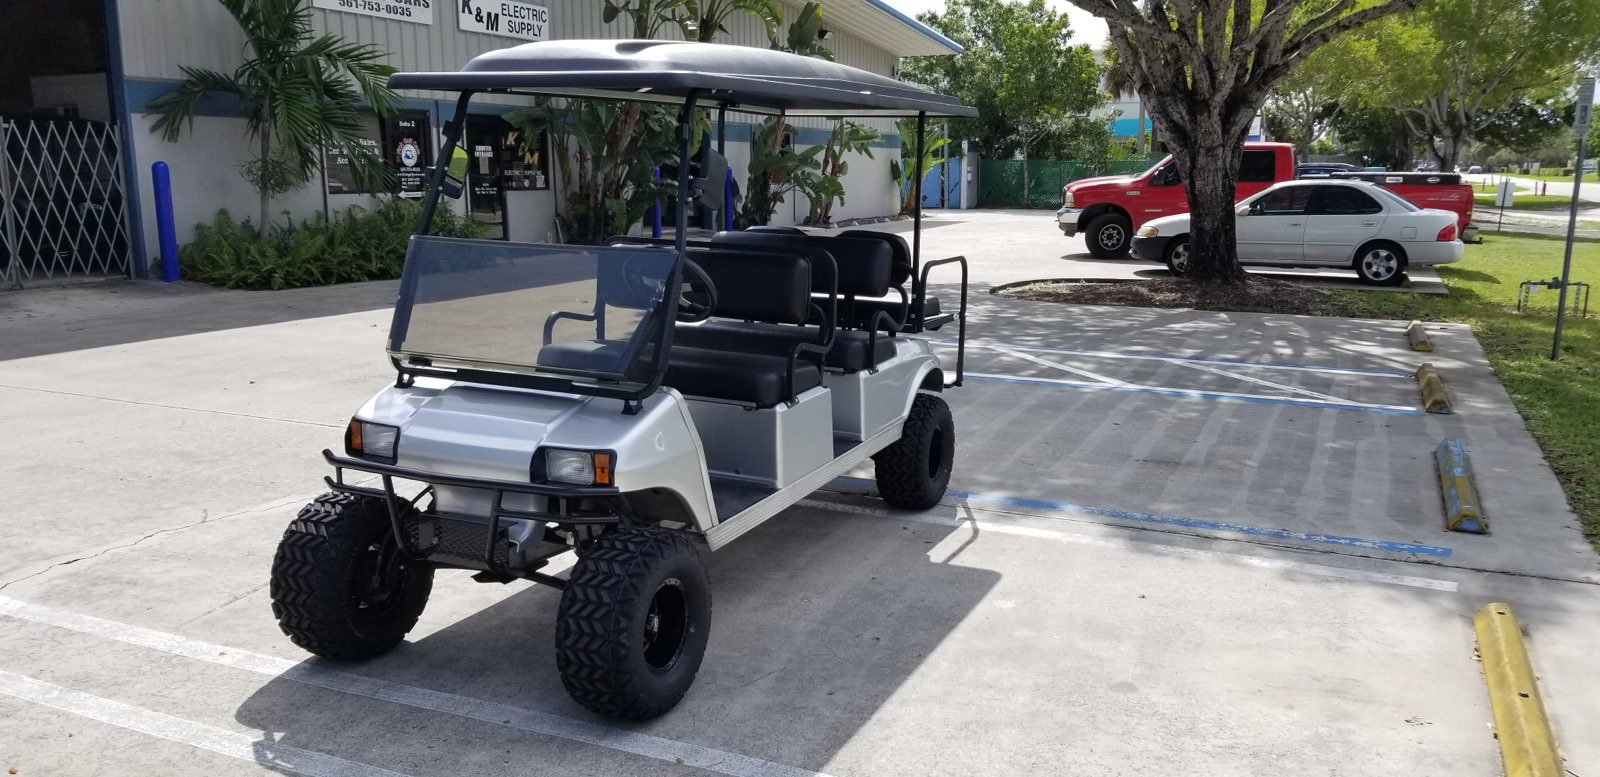 For-Sale Used Golf Carts Western Pa Html on